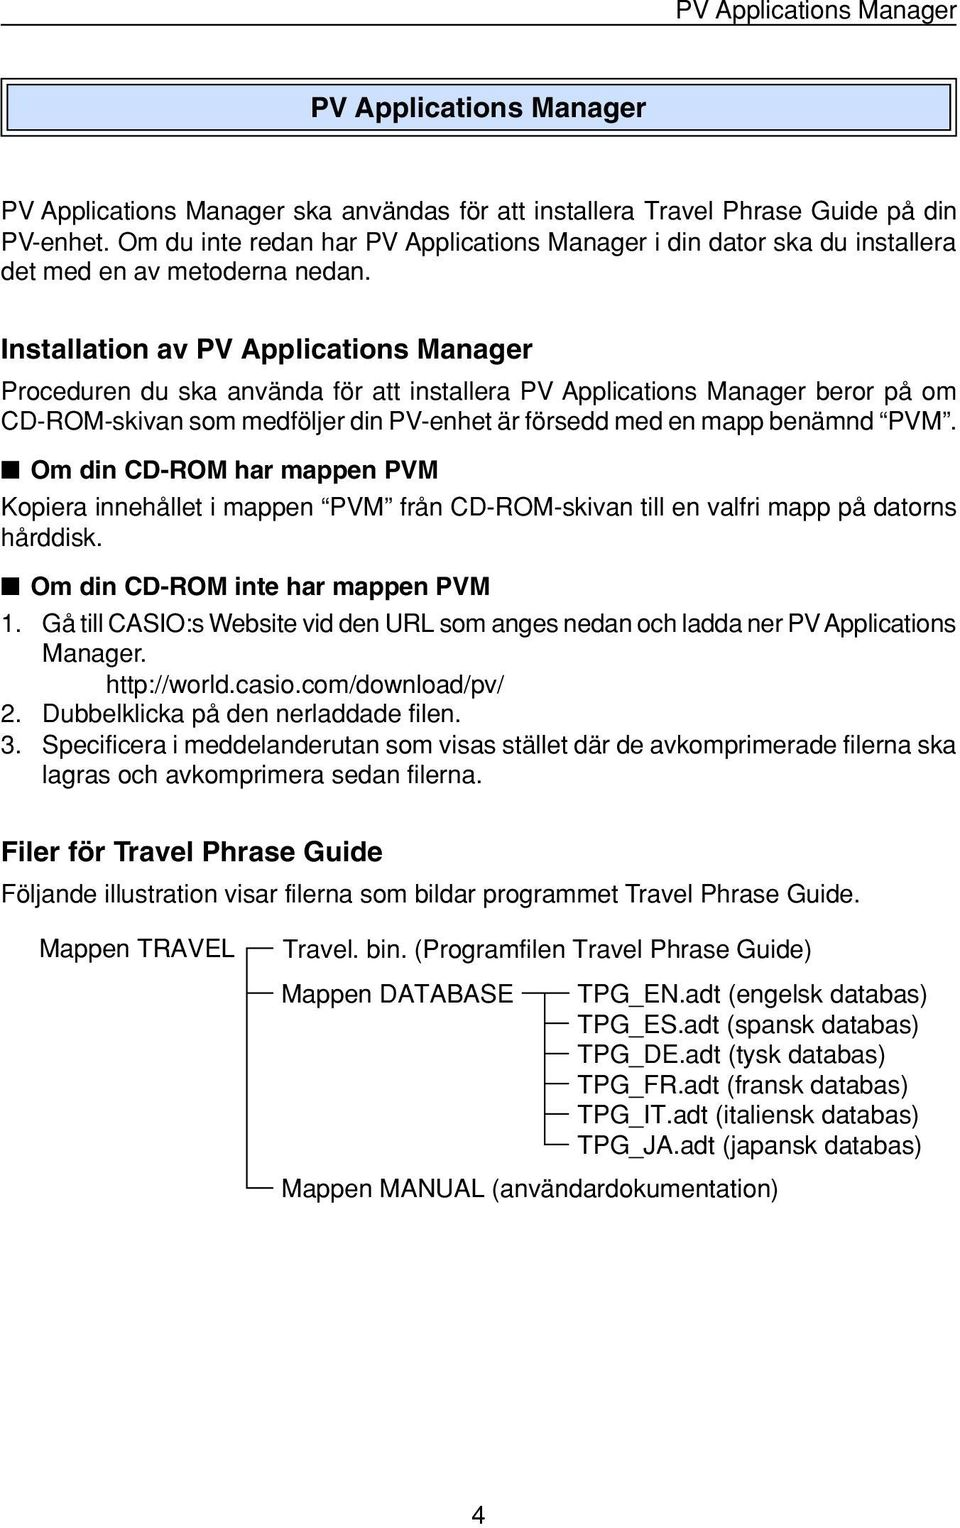 Installation av PV Applications Manager Proceduren du ska använda för att installera PV Applications Manager beror på om CD-ROM-skivan som medföljer din PV-enhet är försedd med en mapp benämnd PVM.